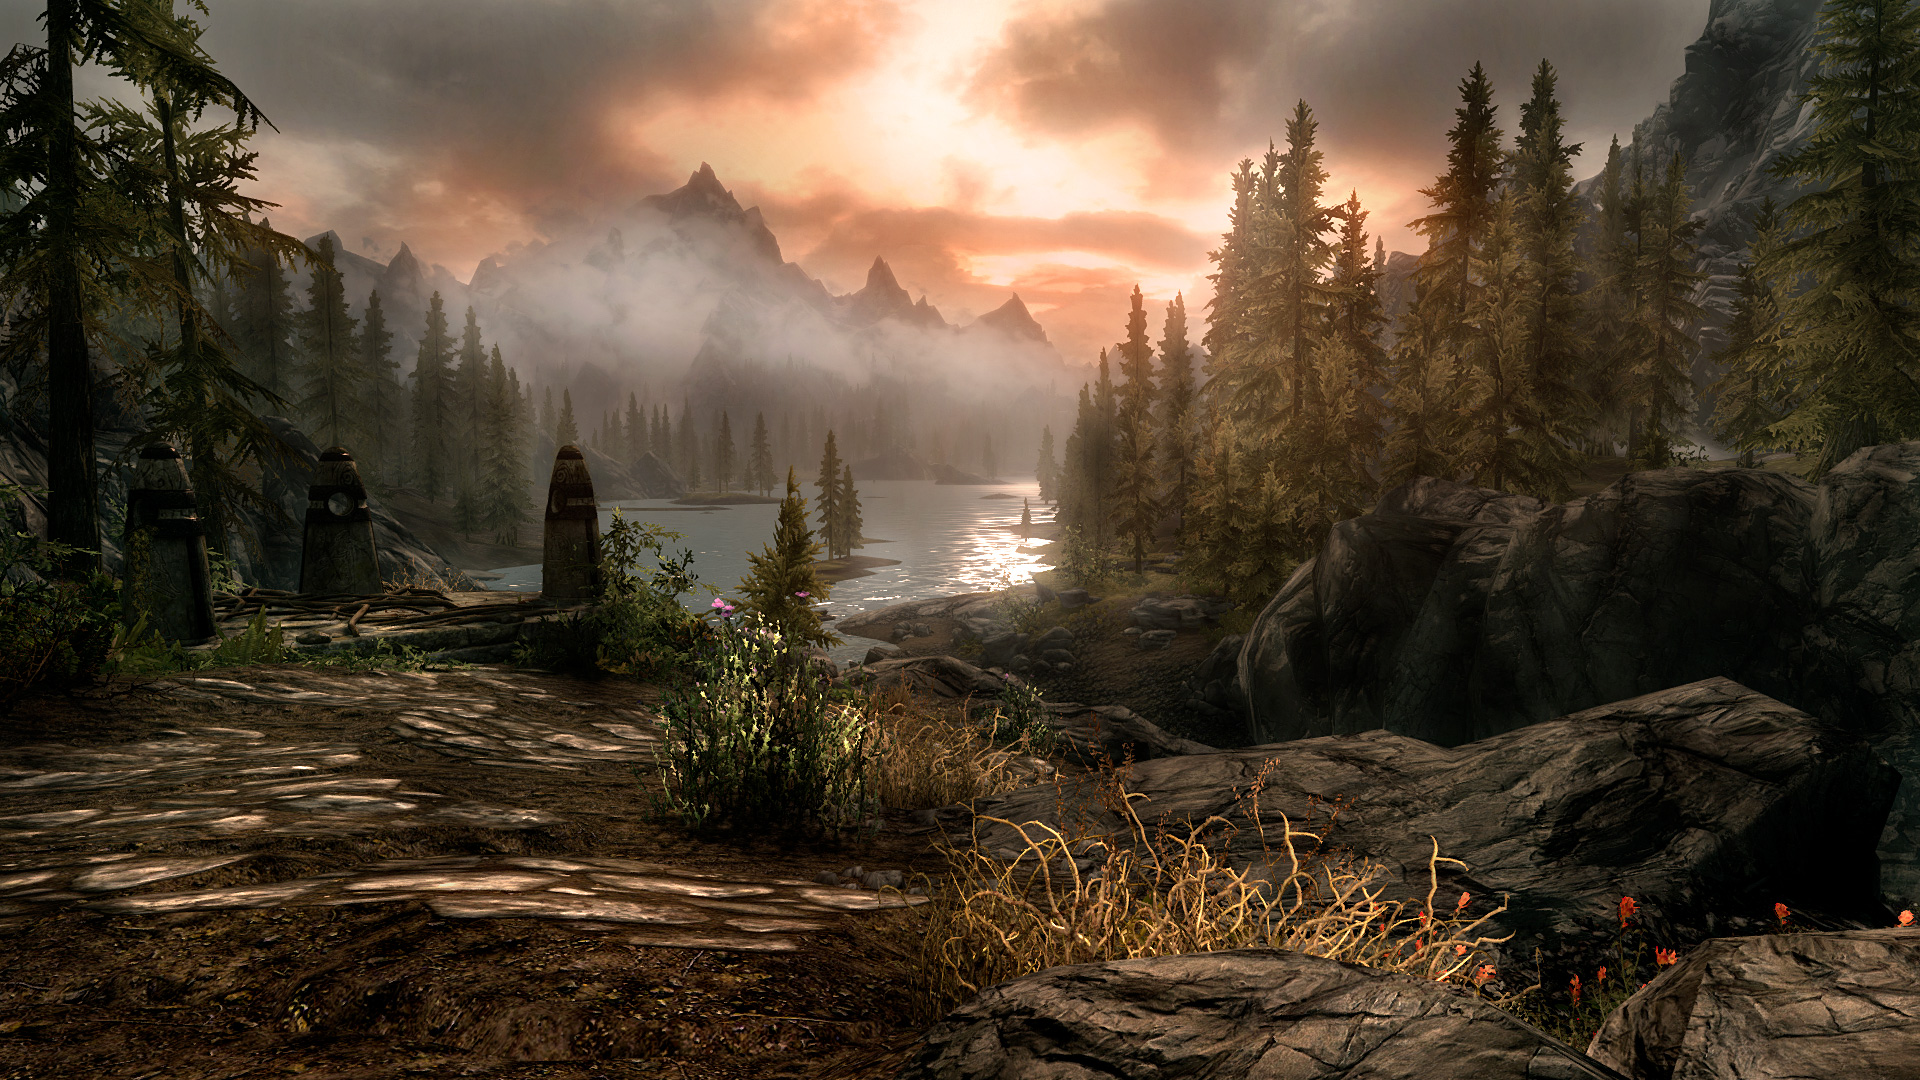 Skyrim Elder Scrolls Landscape Mountains Lake wallpaper background